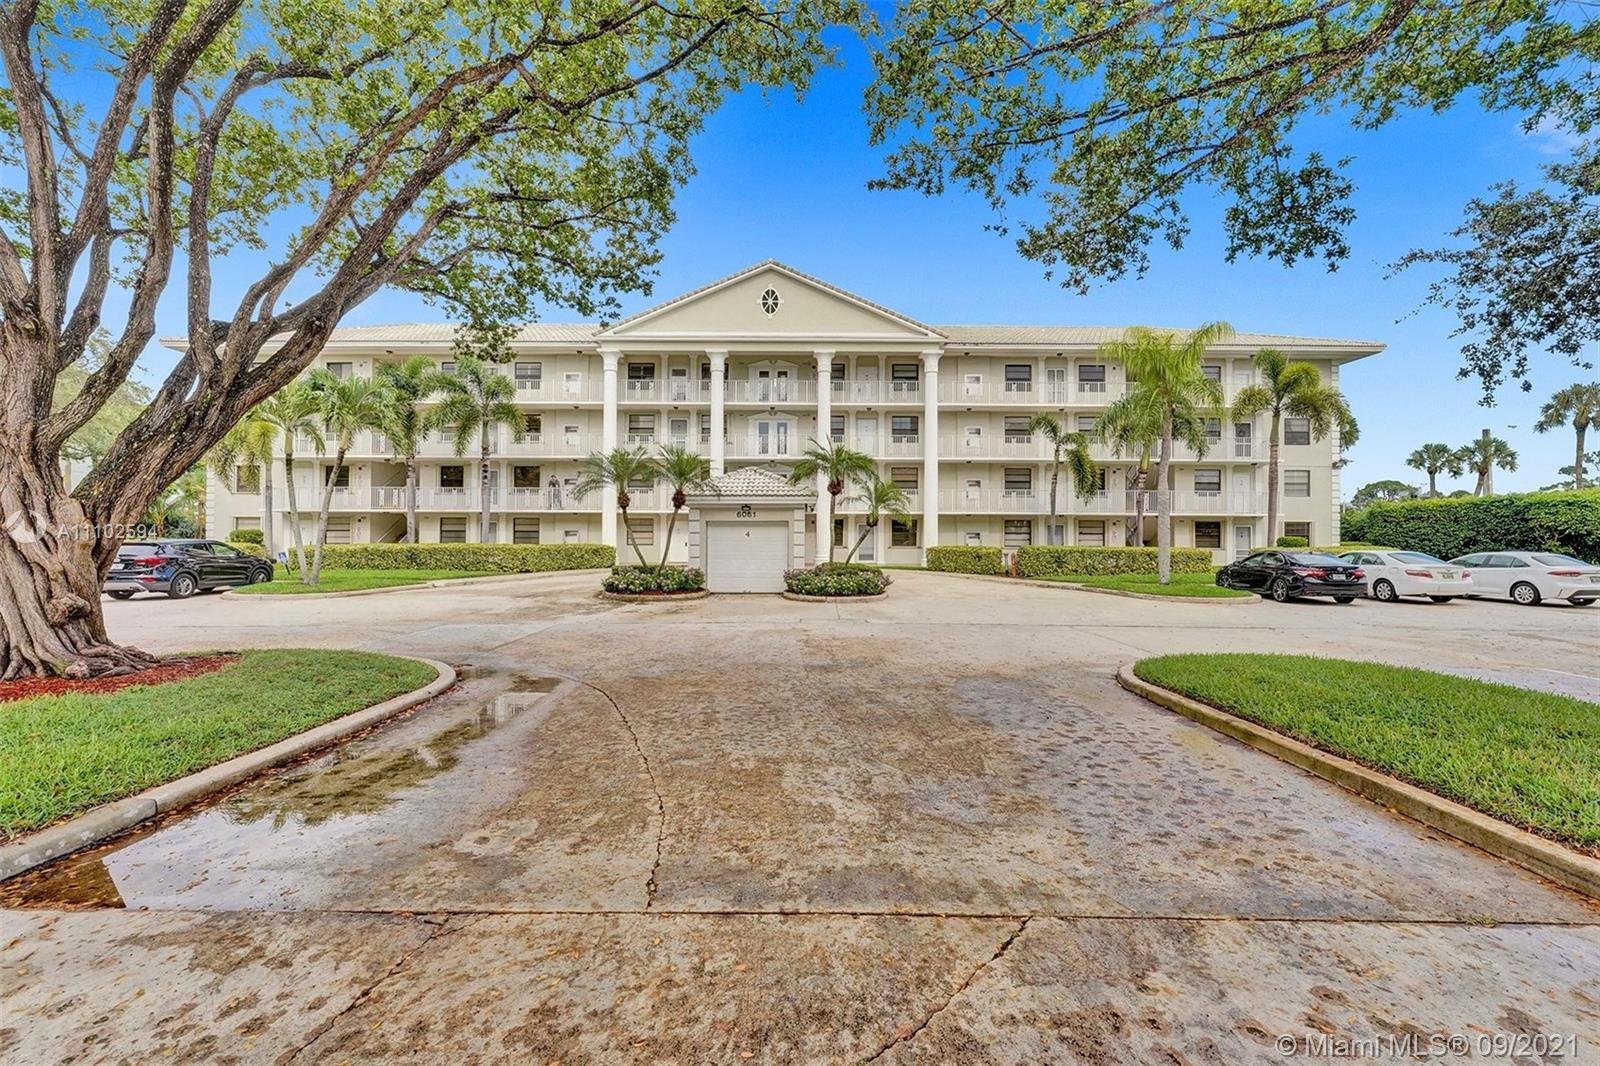 LOOK NO FURTHER THE BEST LOCATION IN BOCA RATON! 2/2 CONDO IN WHITEHALL AT CAMINO IS CENTRALLY LOCAT